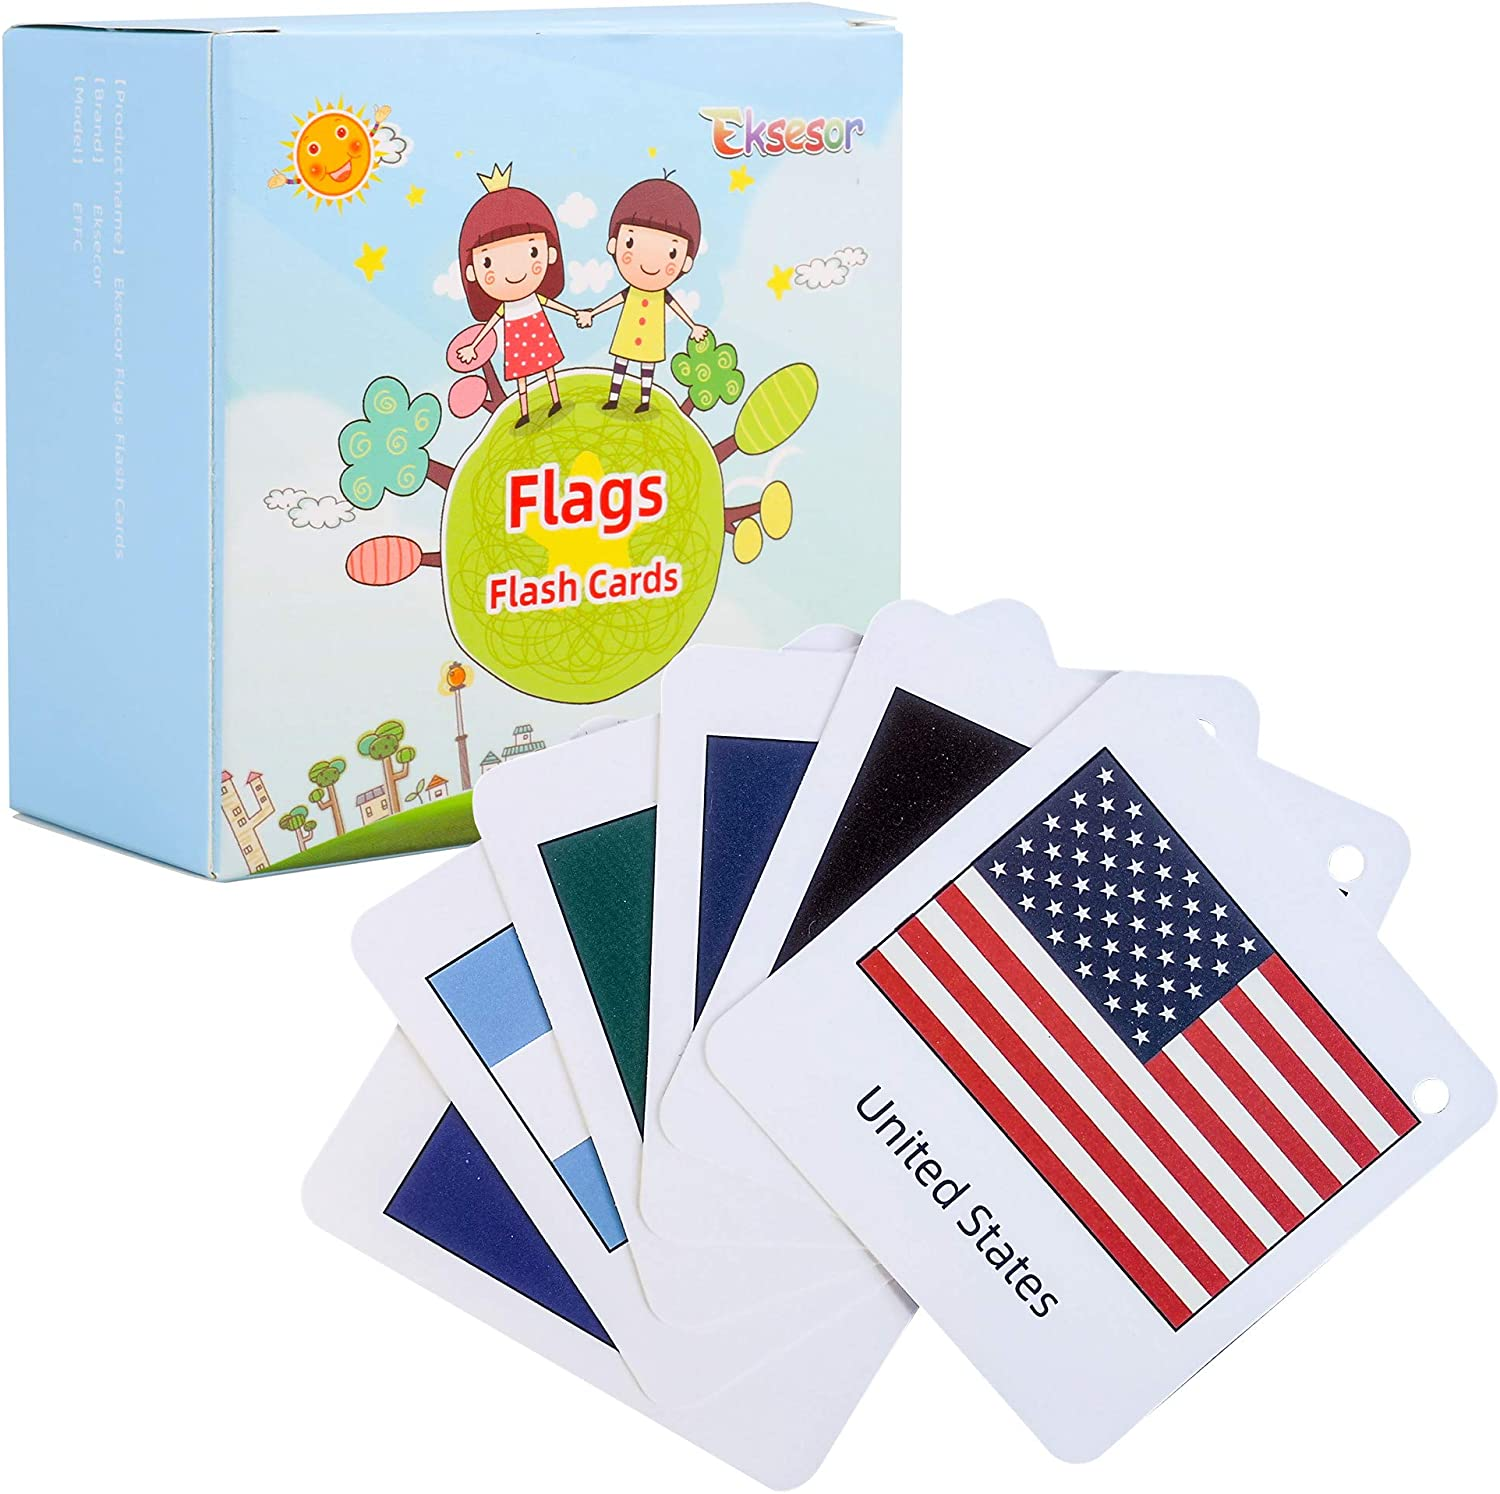 Eksesor Flags Flashcards for Kids, Educational World Countries Flags 70pcs